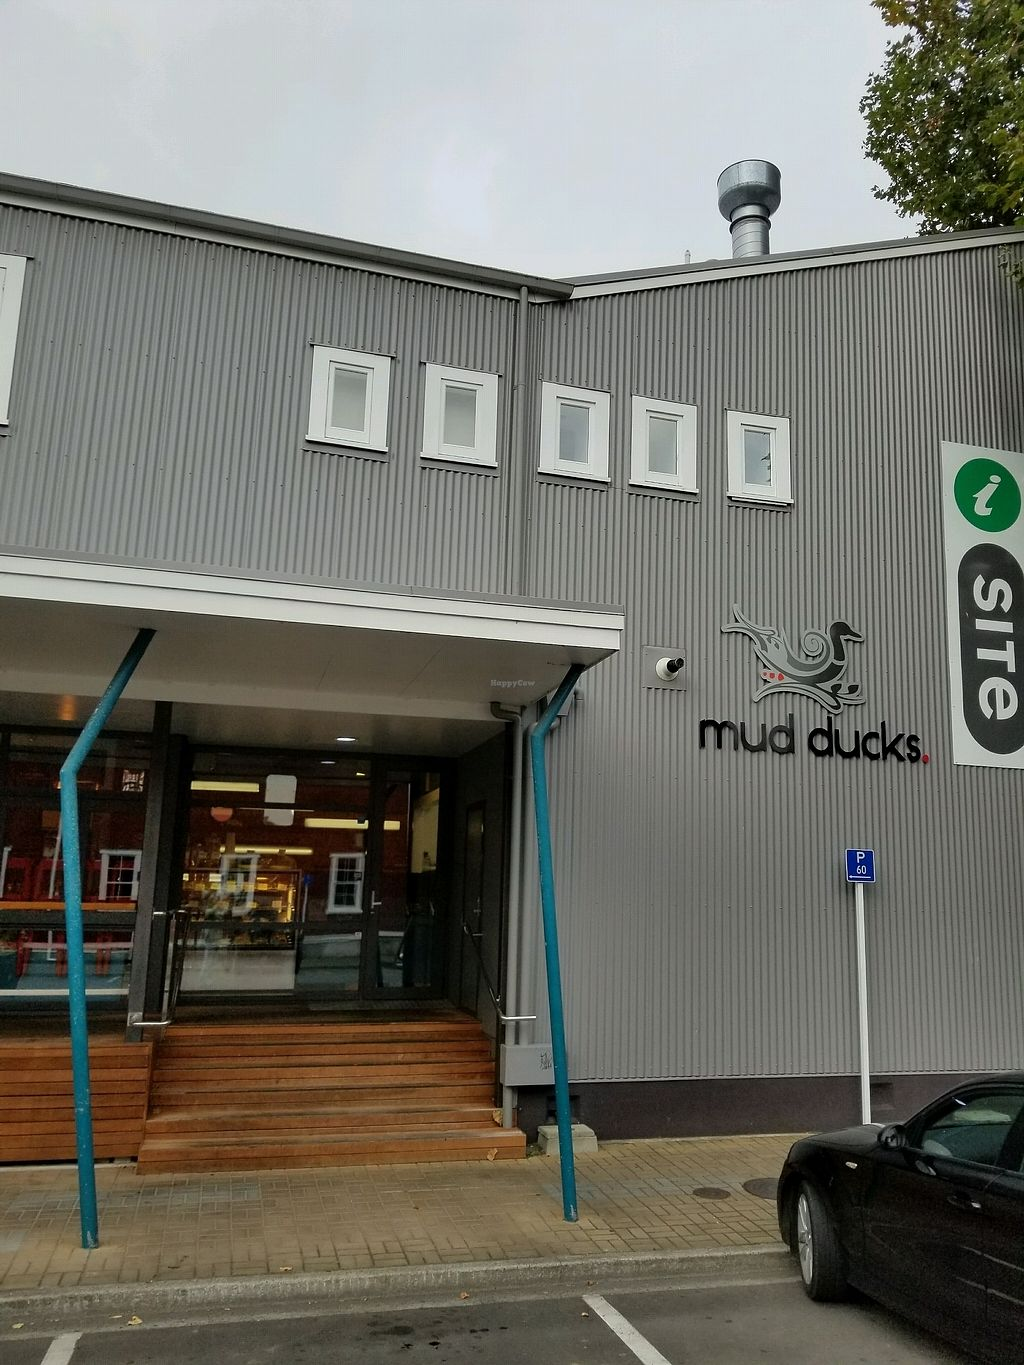 "Photo of Mud Ducks Cafe  by <a href=""/members/profile/AndyTheVWDude"">AndyTheVWDude</a> <br/>Mud Ducks Cafe ~ Taupo Quay <br/> March 15, 2018  - <a href='/contact/abuse/image/112778/370909'>Report</a>"